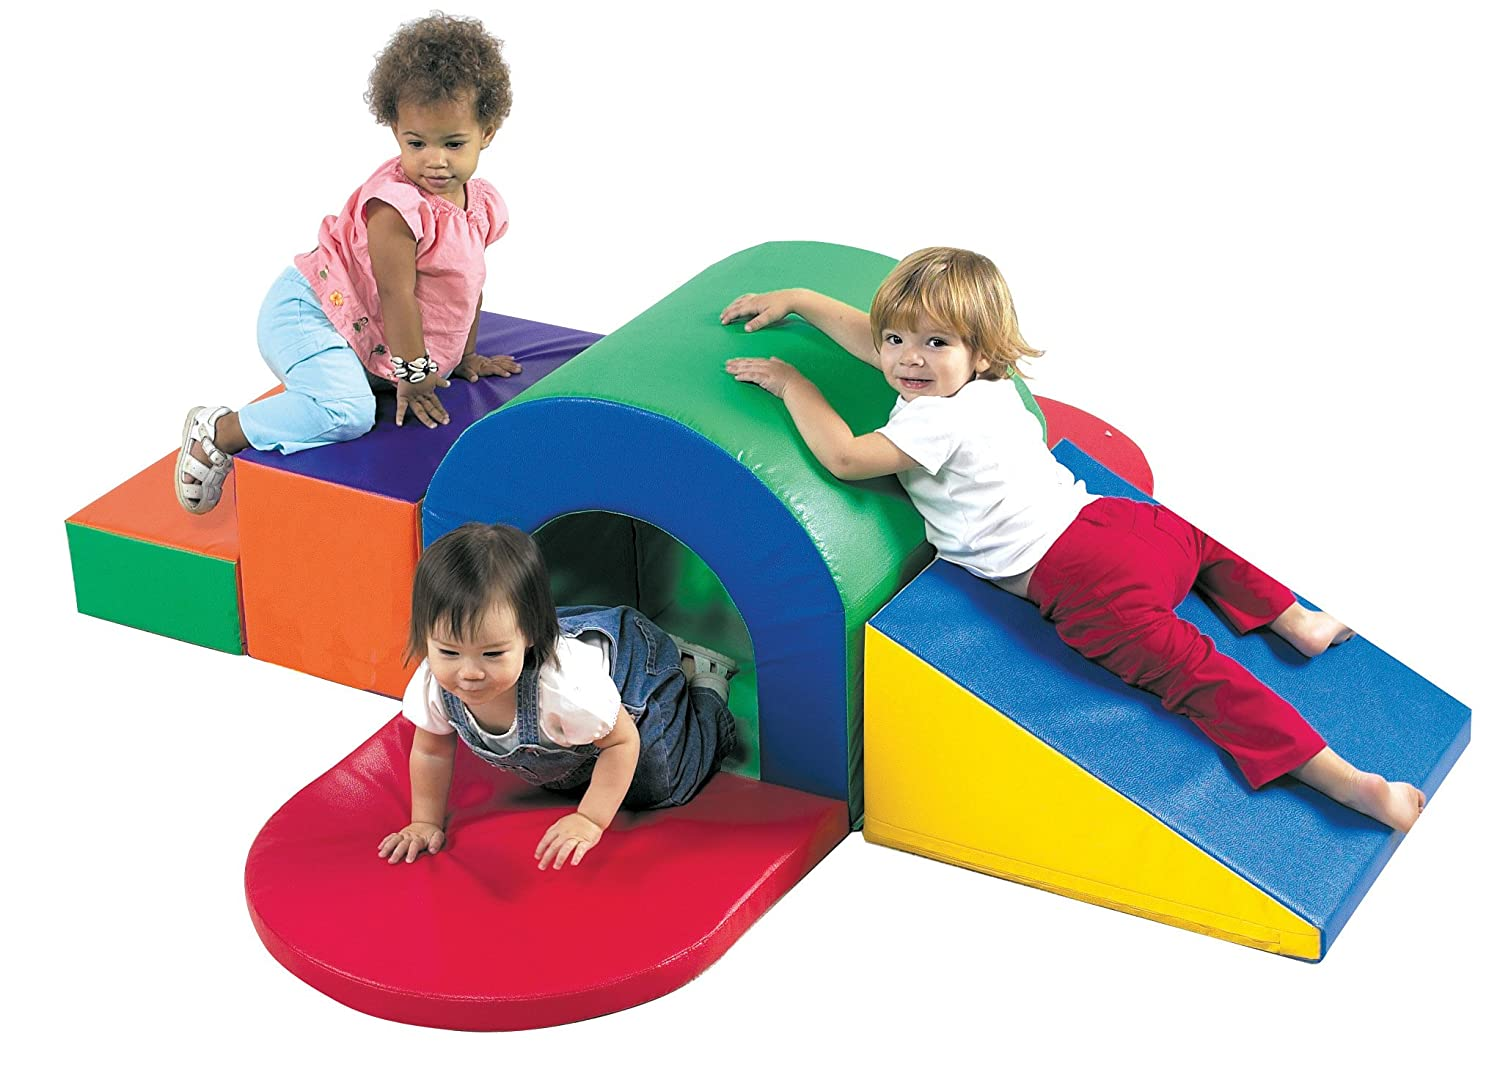 B000IQ5TAC Childrens Factory Alpine Tunnel Slide, 71 by 70 by 20 – Versatile Unit Perfect for Learning to Crawl, Climb, Balance – Easy to Assemble and Clean – Safe and Fun Active Play Environment (CF322-150) 81z20Jscg9L._SL1500_